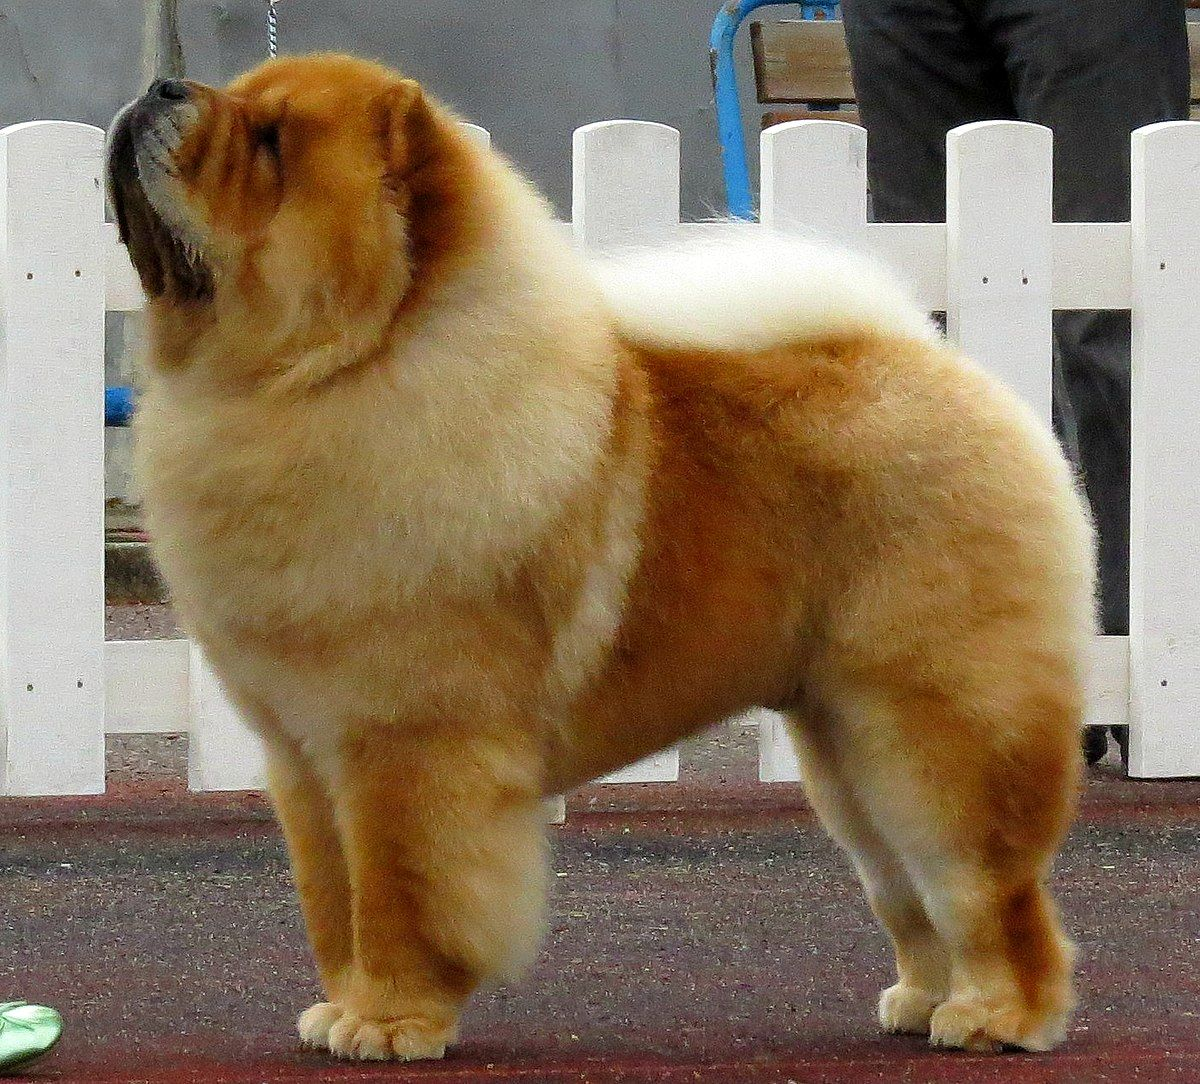 Pin By Robert Post On Cats Dogs Chow Chow Dogs Fluffy Dogs